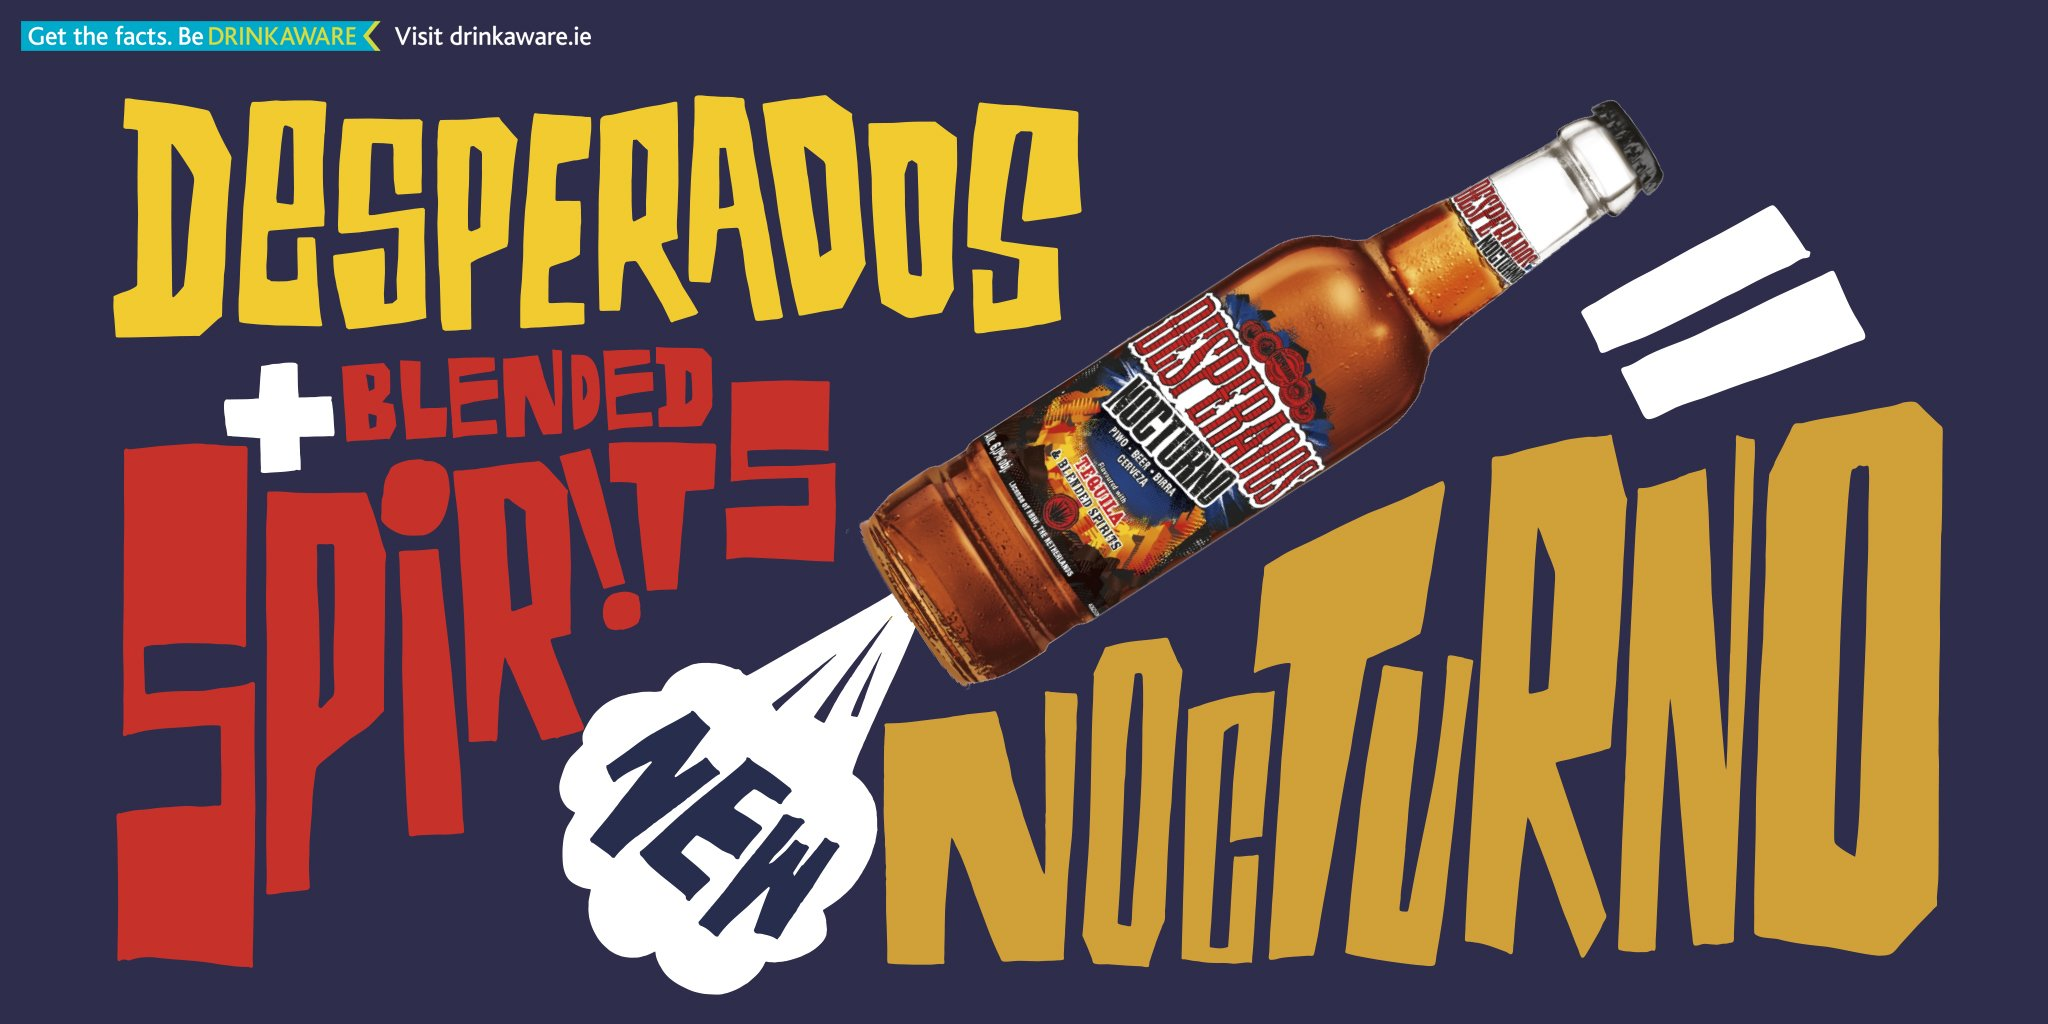 Desperados Ireland On Twitter New Desperados Nocturno Tequila And Blended Spirits Flavoured Beer Is Out Now Getabsurd